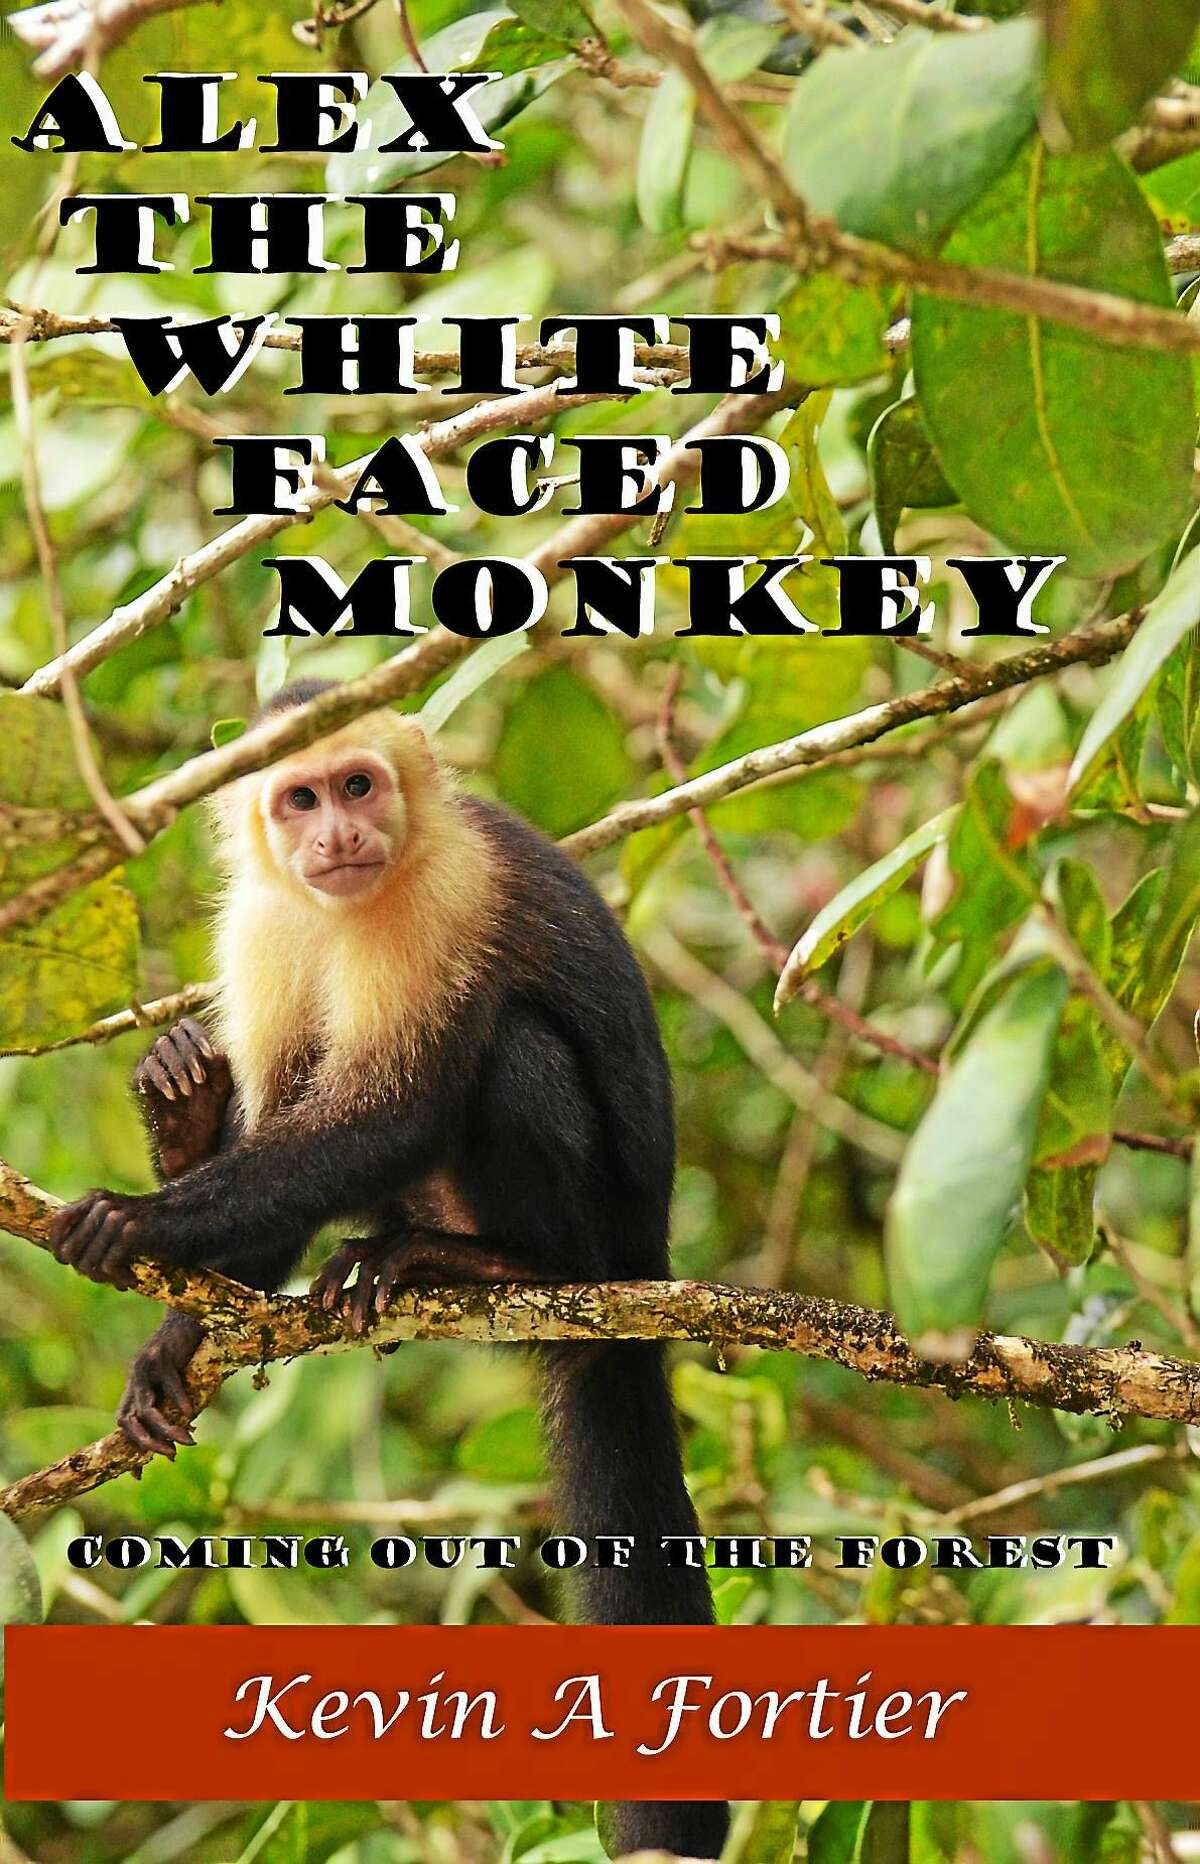 """The Kindle book cover for """"Alex the White Faced Monkey."""""""